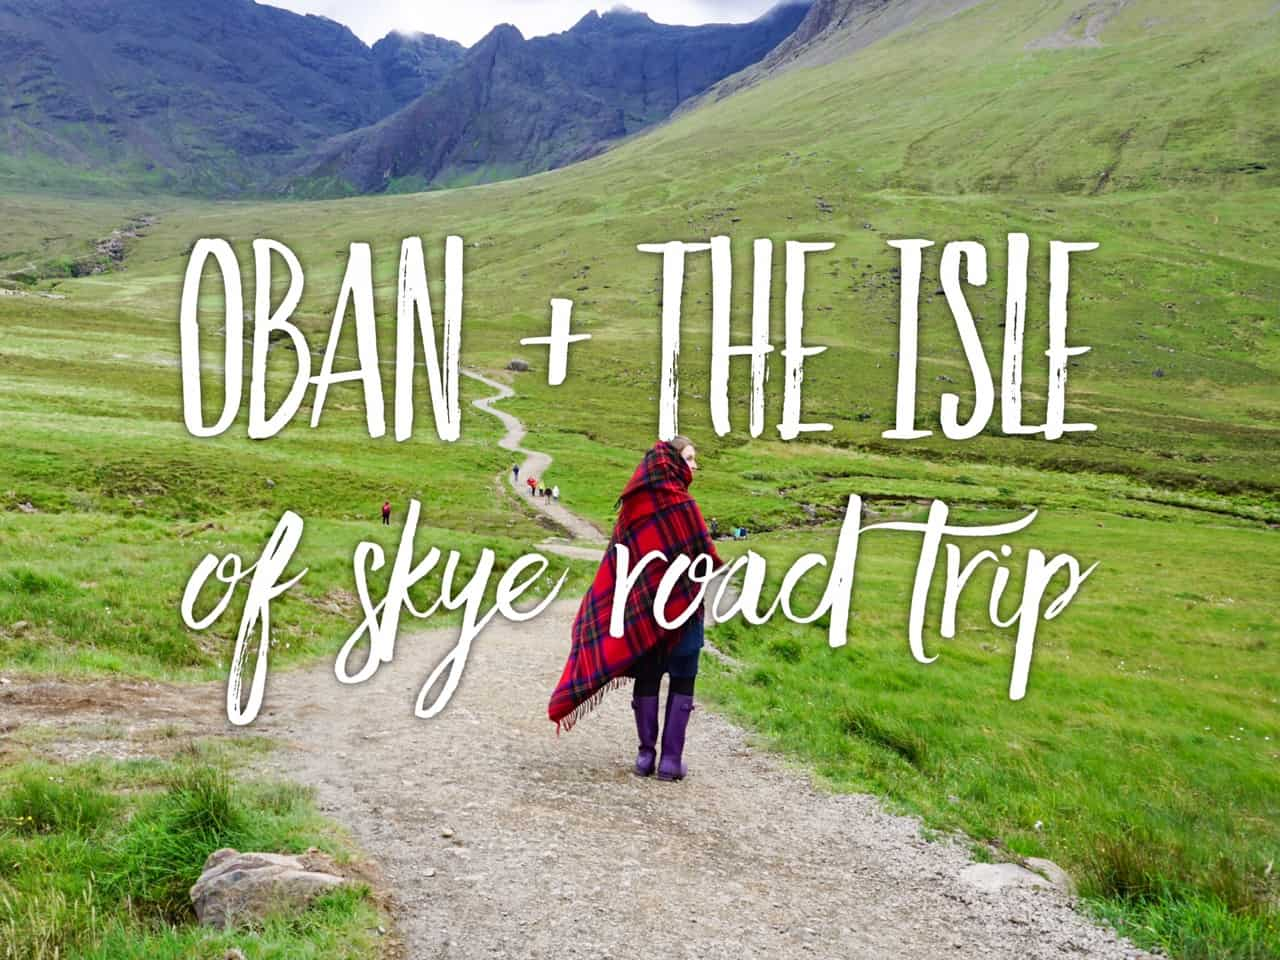 2-day the Isle of Skye itinerary: Edinburgh to Isle of Skye, Scotland